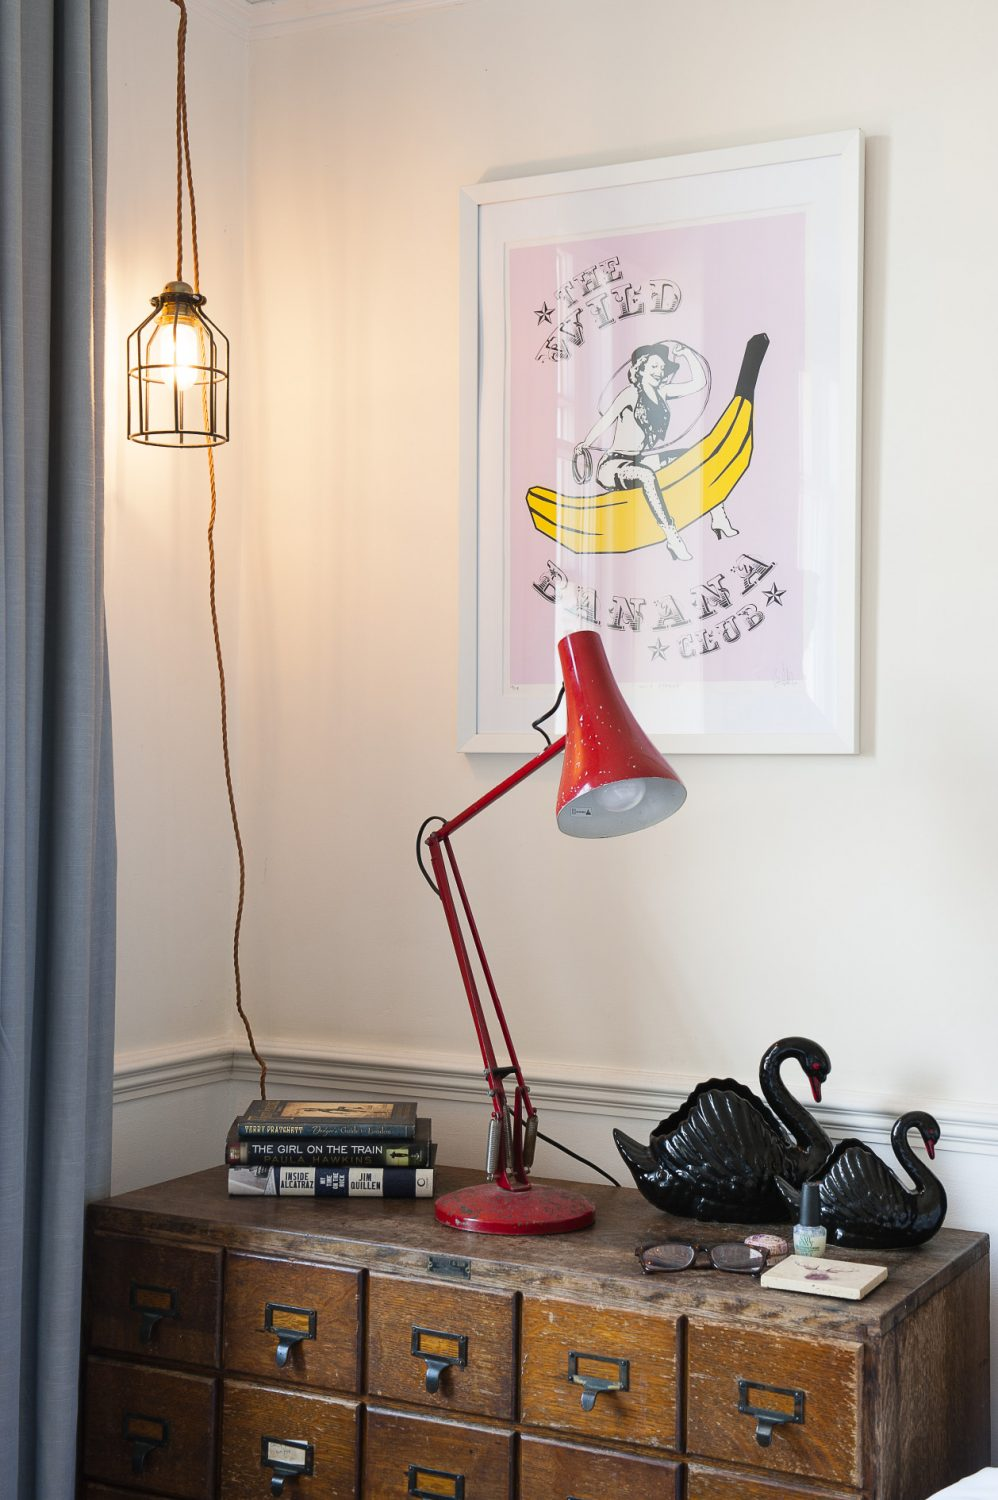 A red Anglepoise lamp sits on top of a chest made from card index drawers that Stuart and Sarah found in Hastings Old Town. They have collected the swans from boot fairs and vintage shops over several years. The pendant light is from Dyke & Dean. The 'Wild Banana Club' print is by their friend Ben Allen